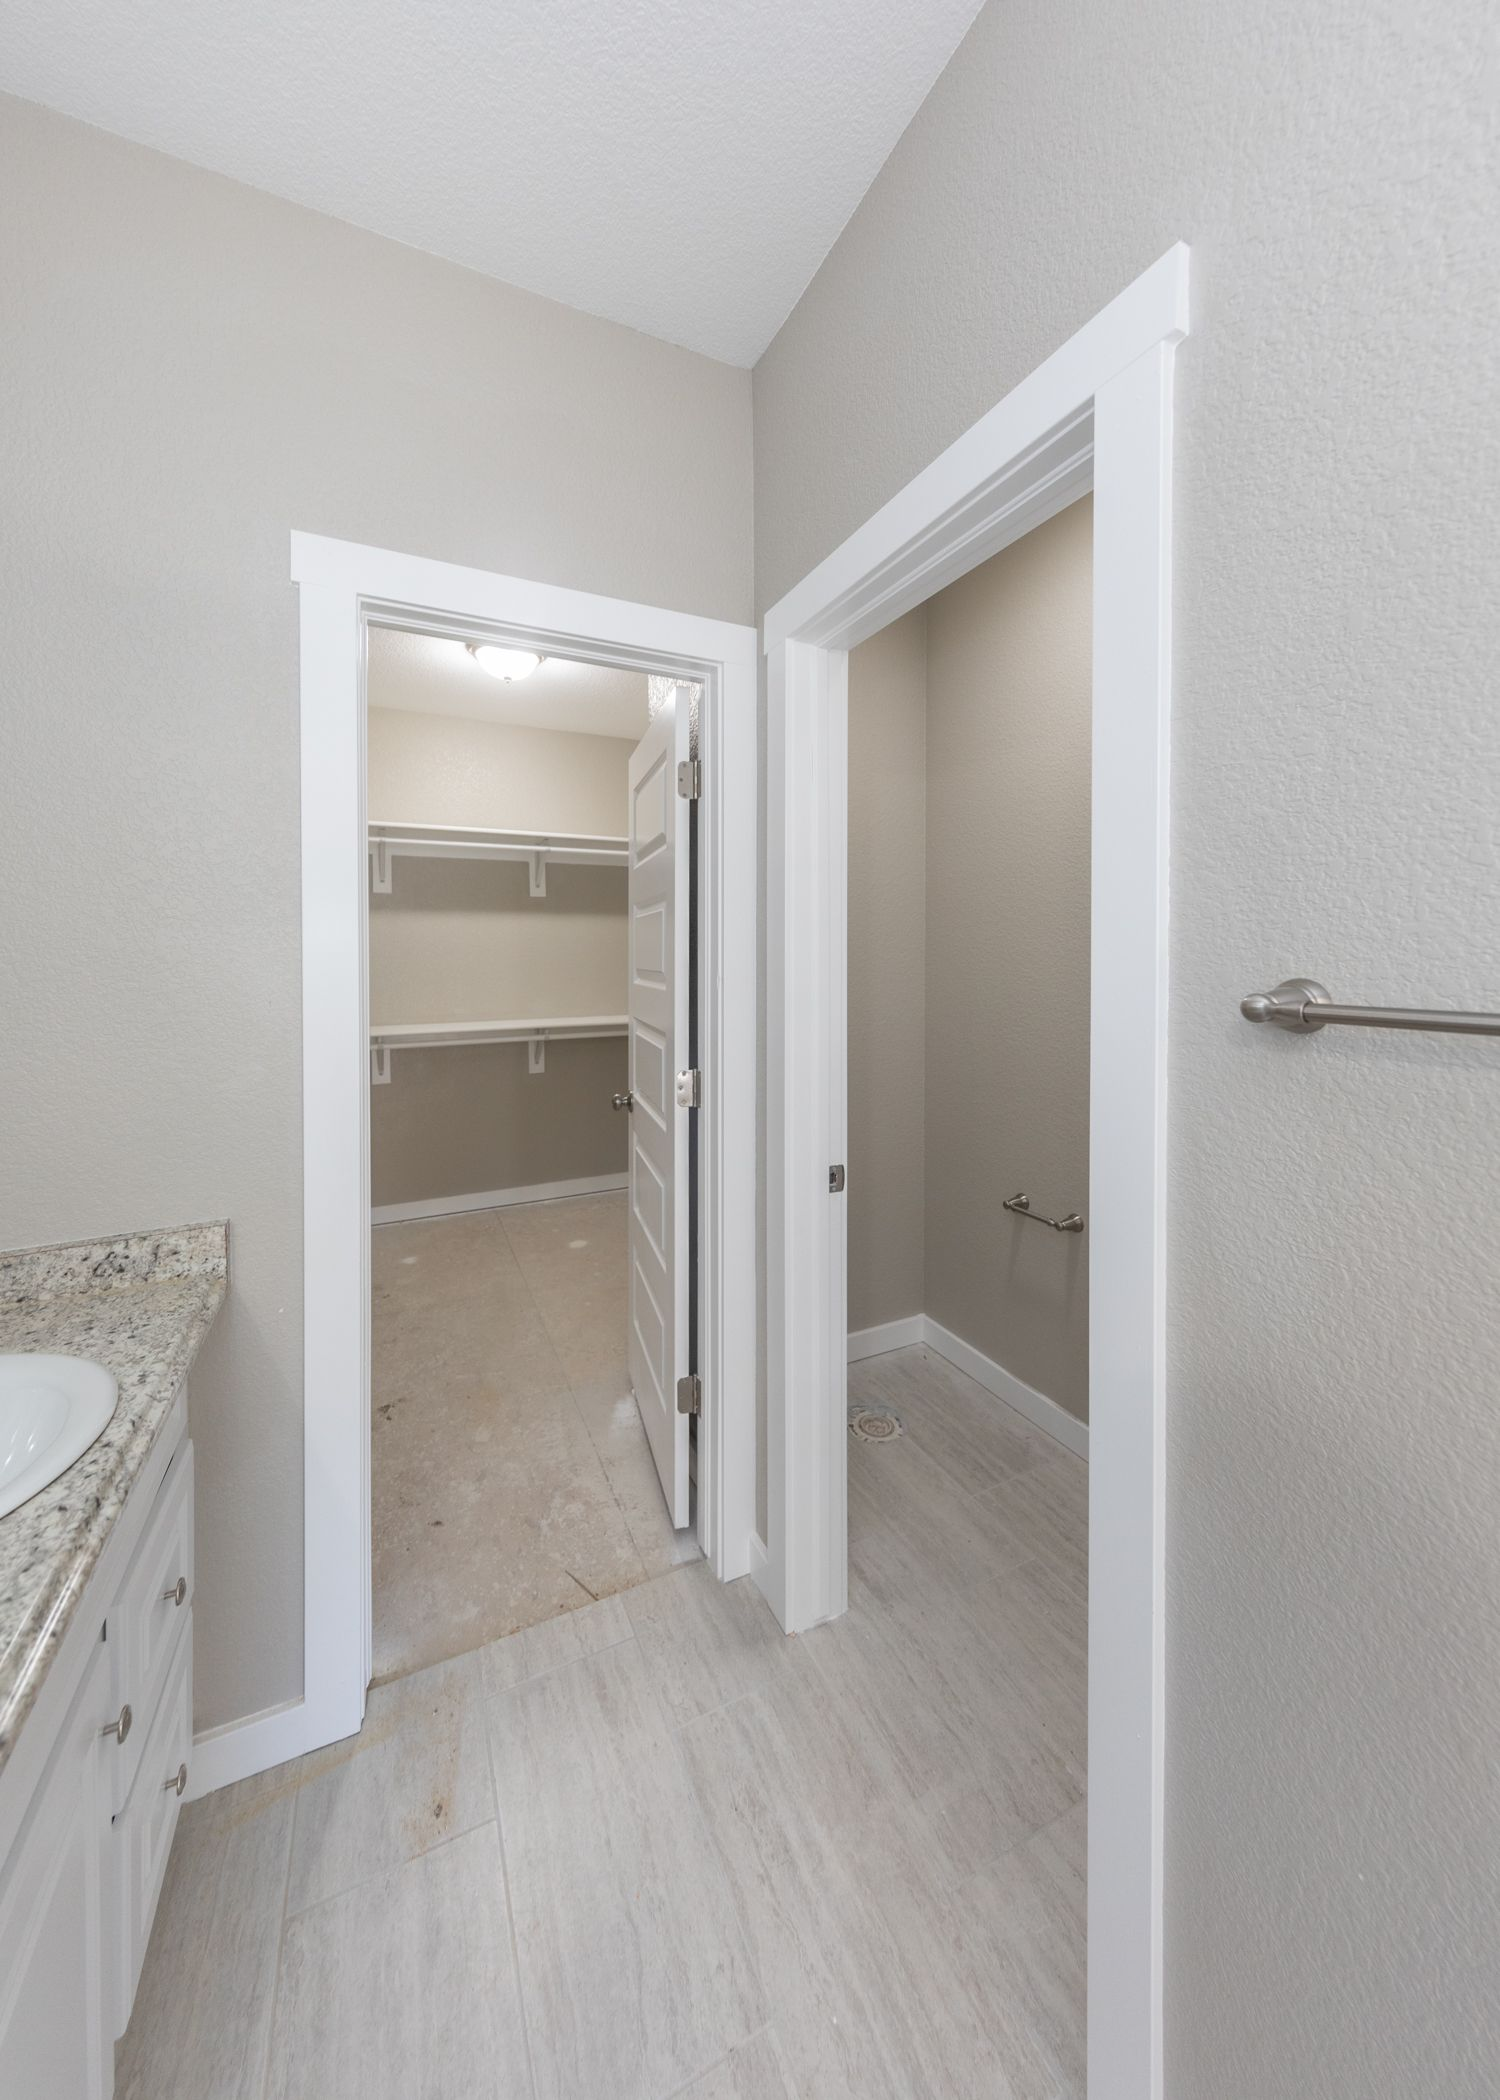 Bathroom featured in the La Plata By Ideal Homes in Colorado Springs, CO